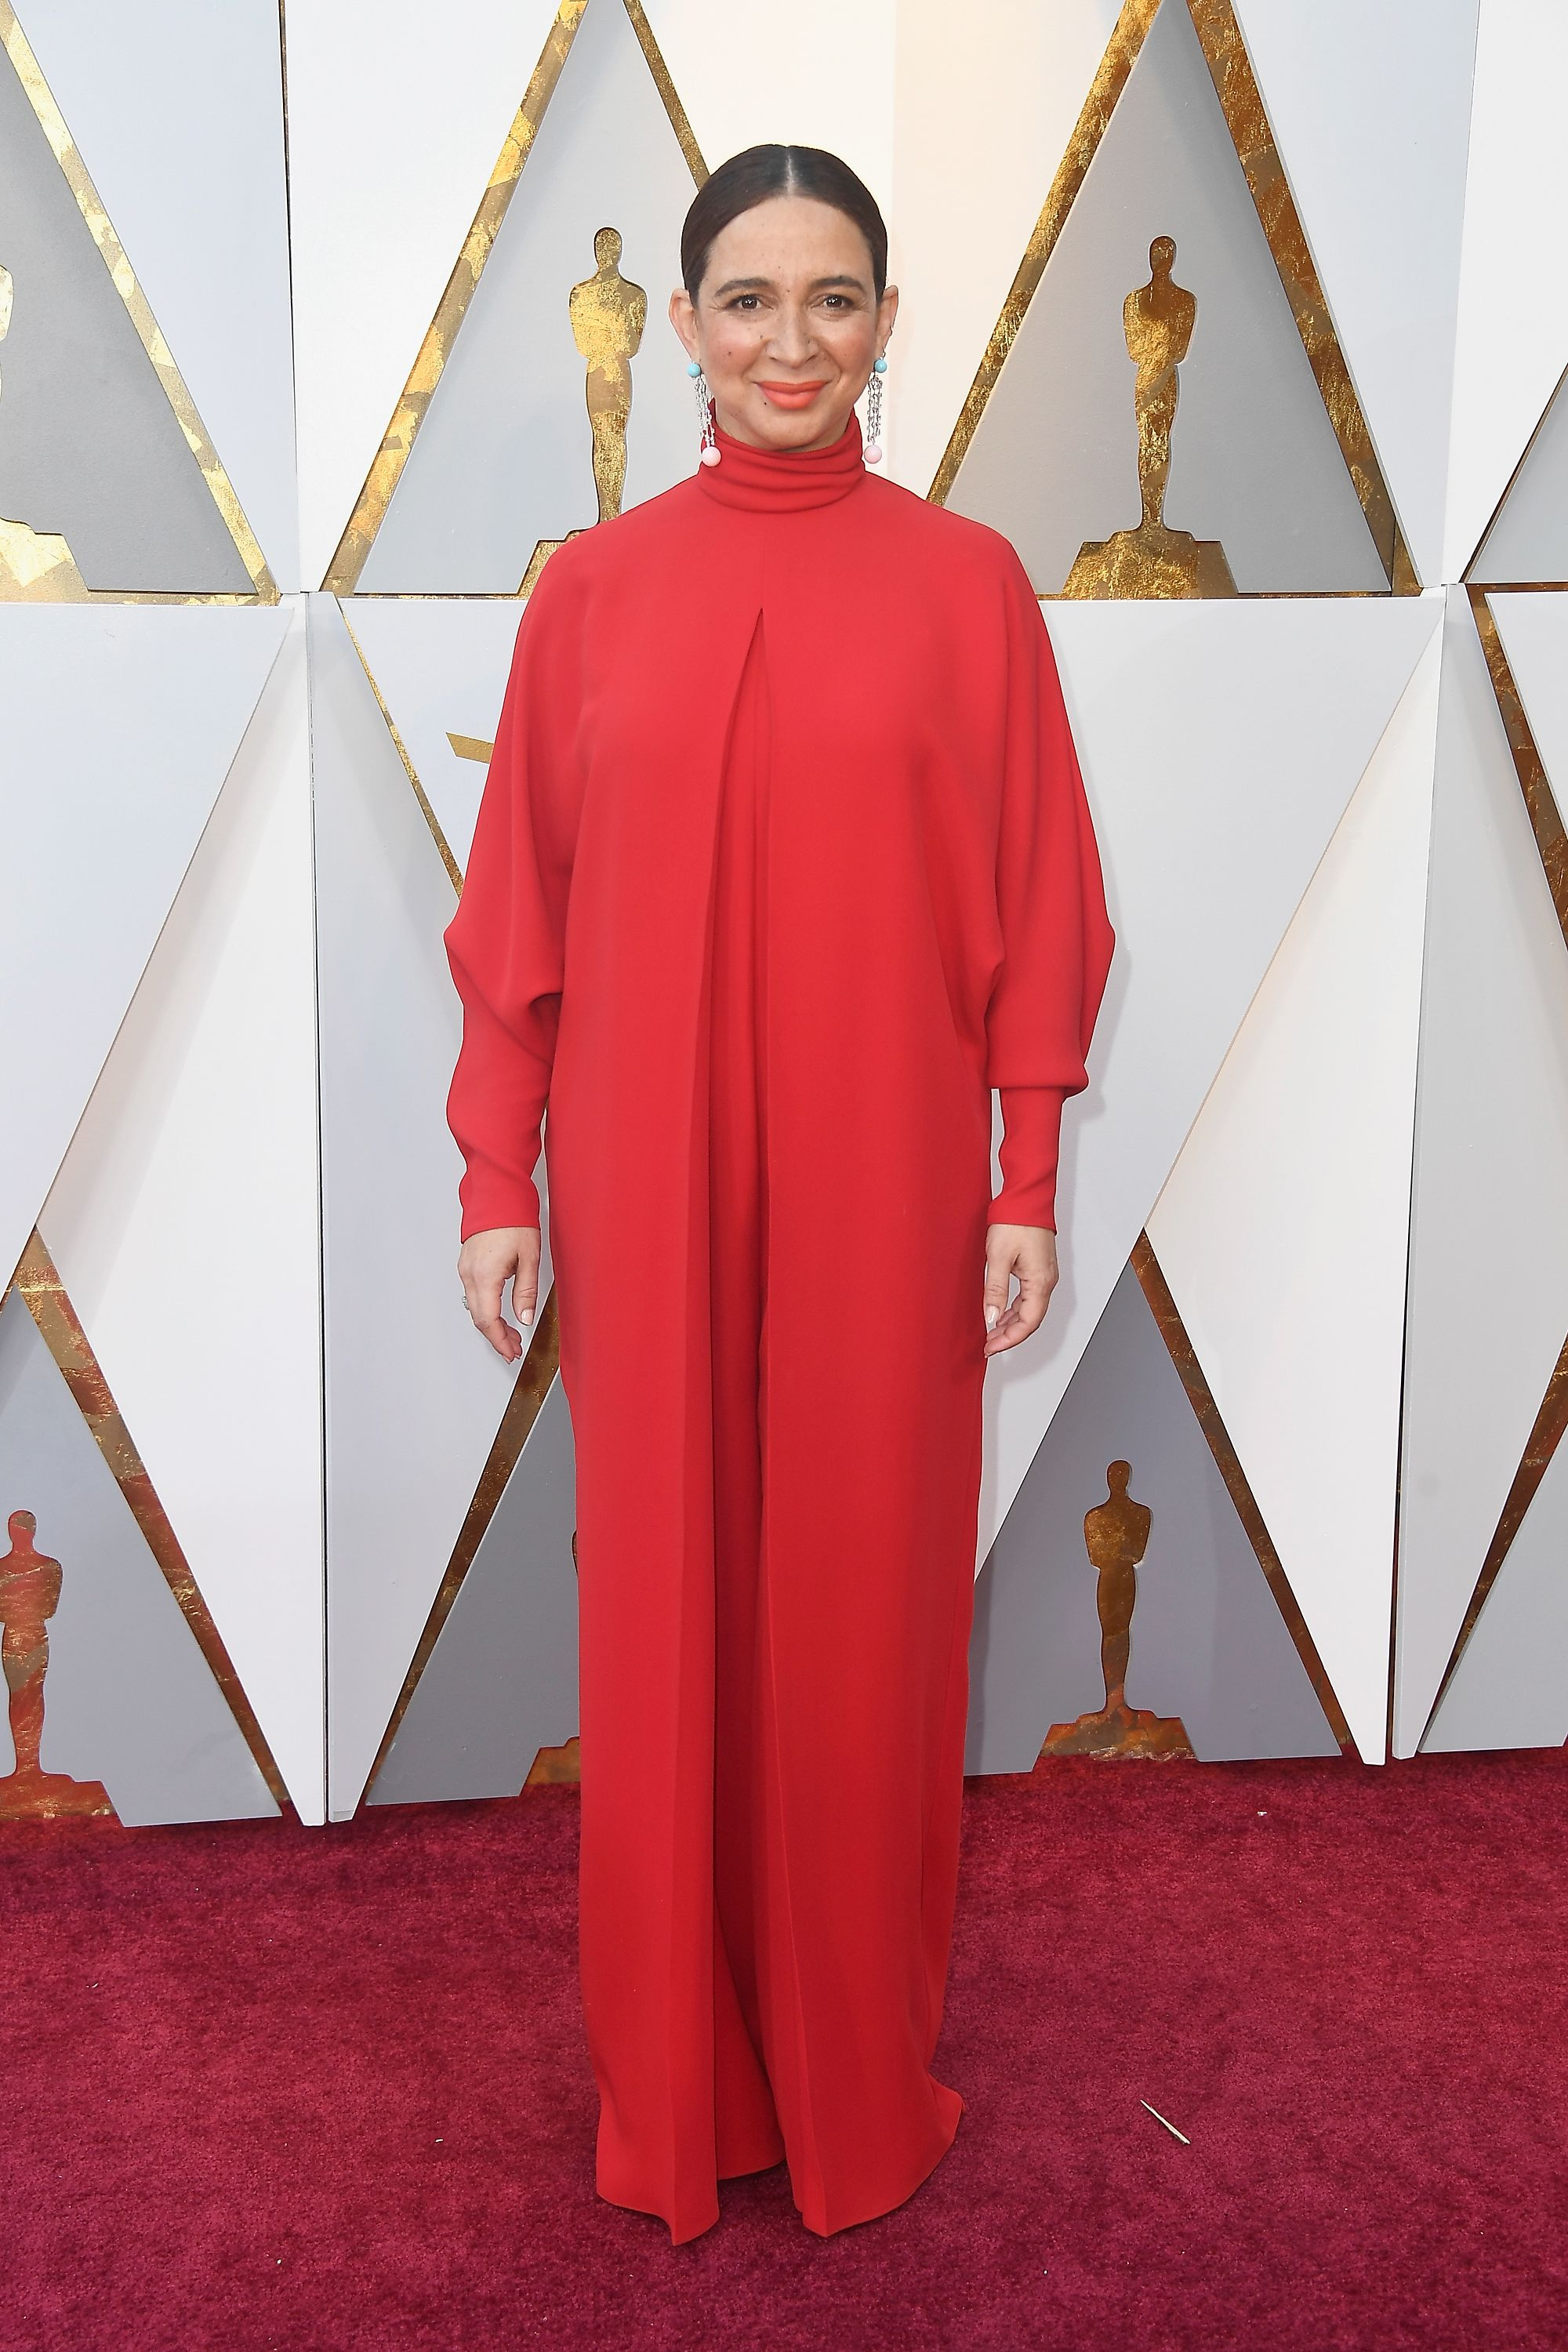 HOLLYWOOD, CA - MARCH 04: Maya Rudolph attends the 90th Annual Academy Awards at Hollywood & Highland Center on March 4, 2018 in Hollywood, California. (Photo by Frazer Harrison/Getty Images)